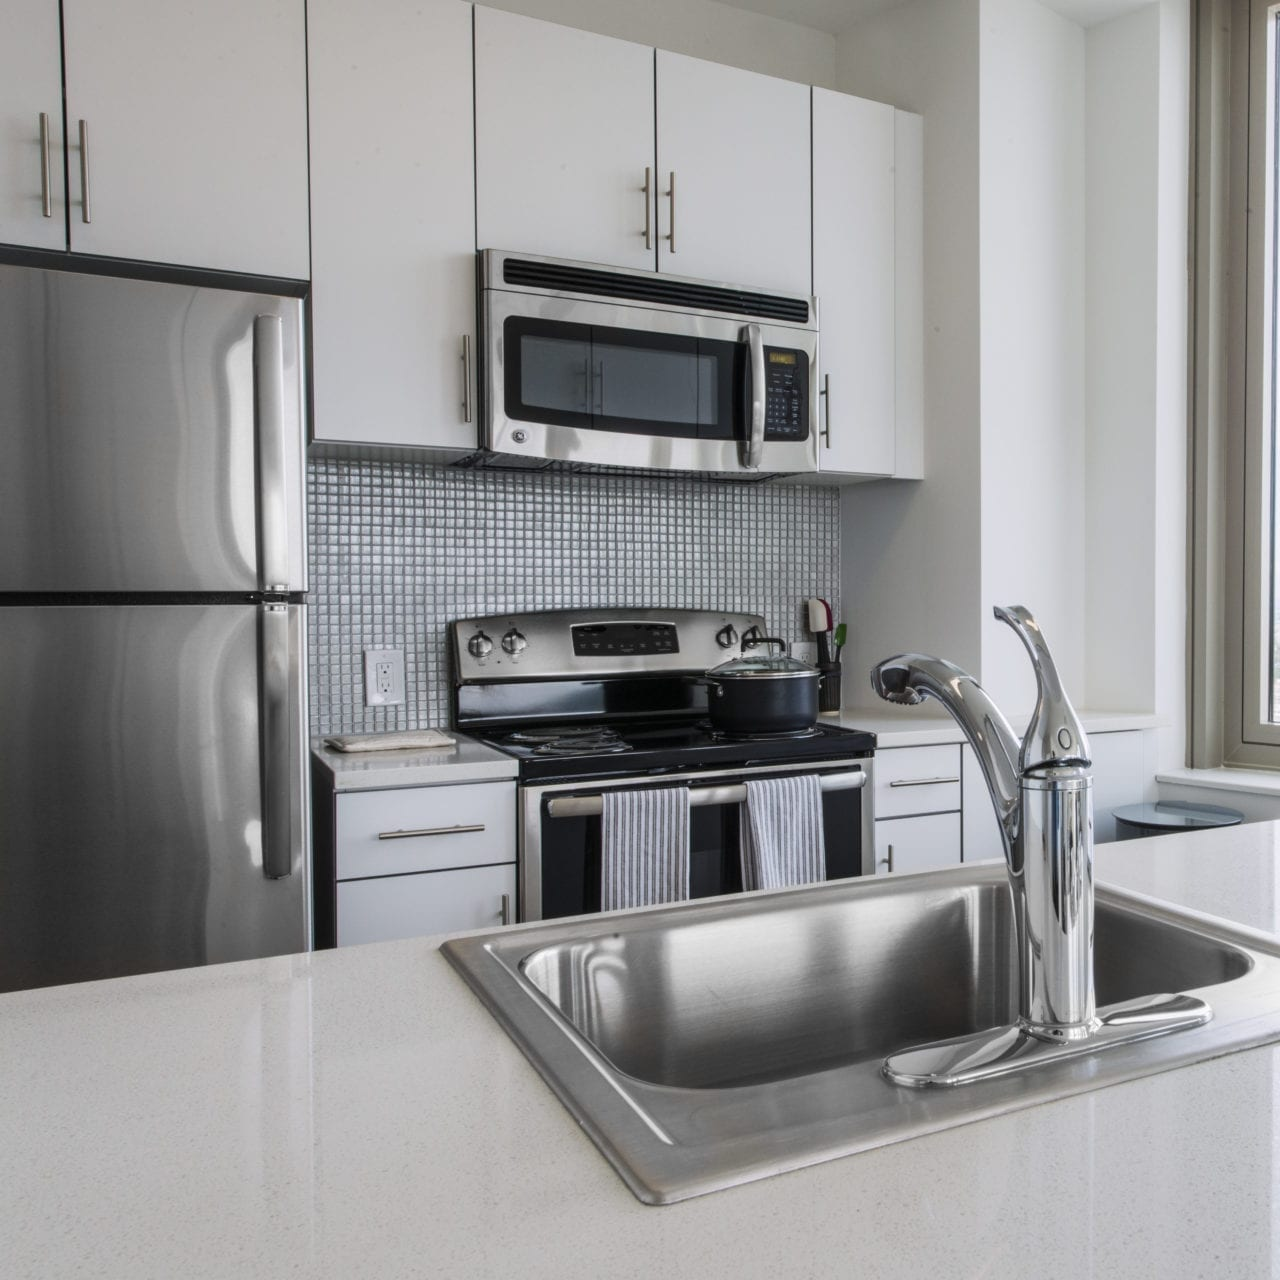 Stainless Steel Appliances & White Quartz Countertops